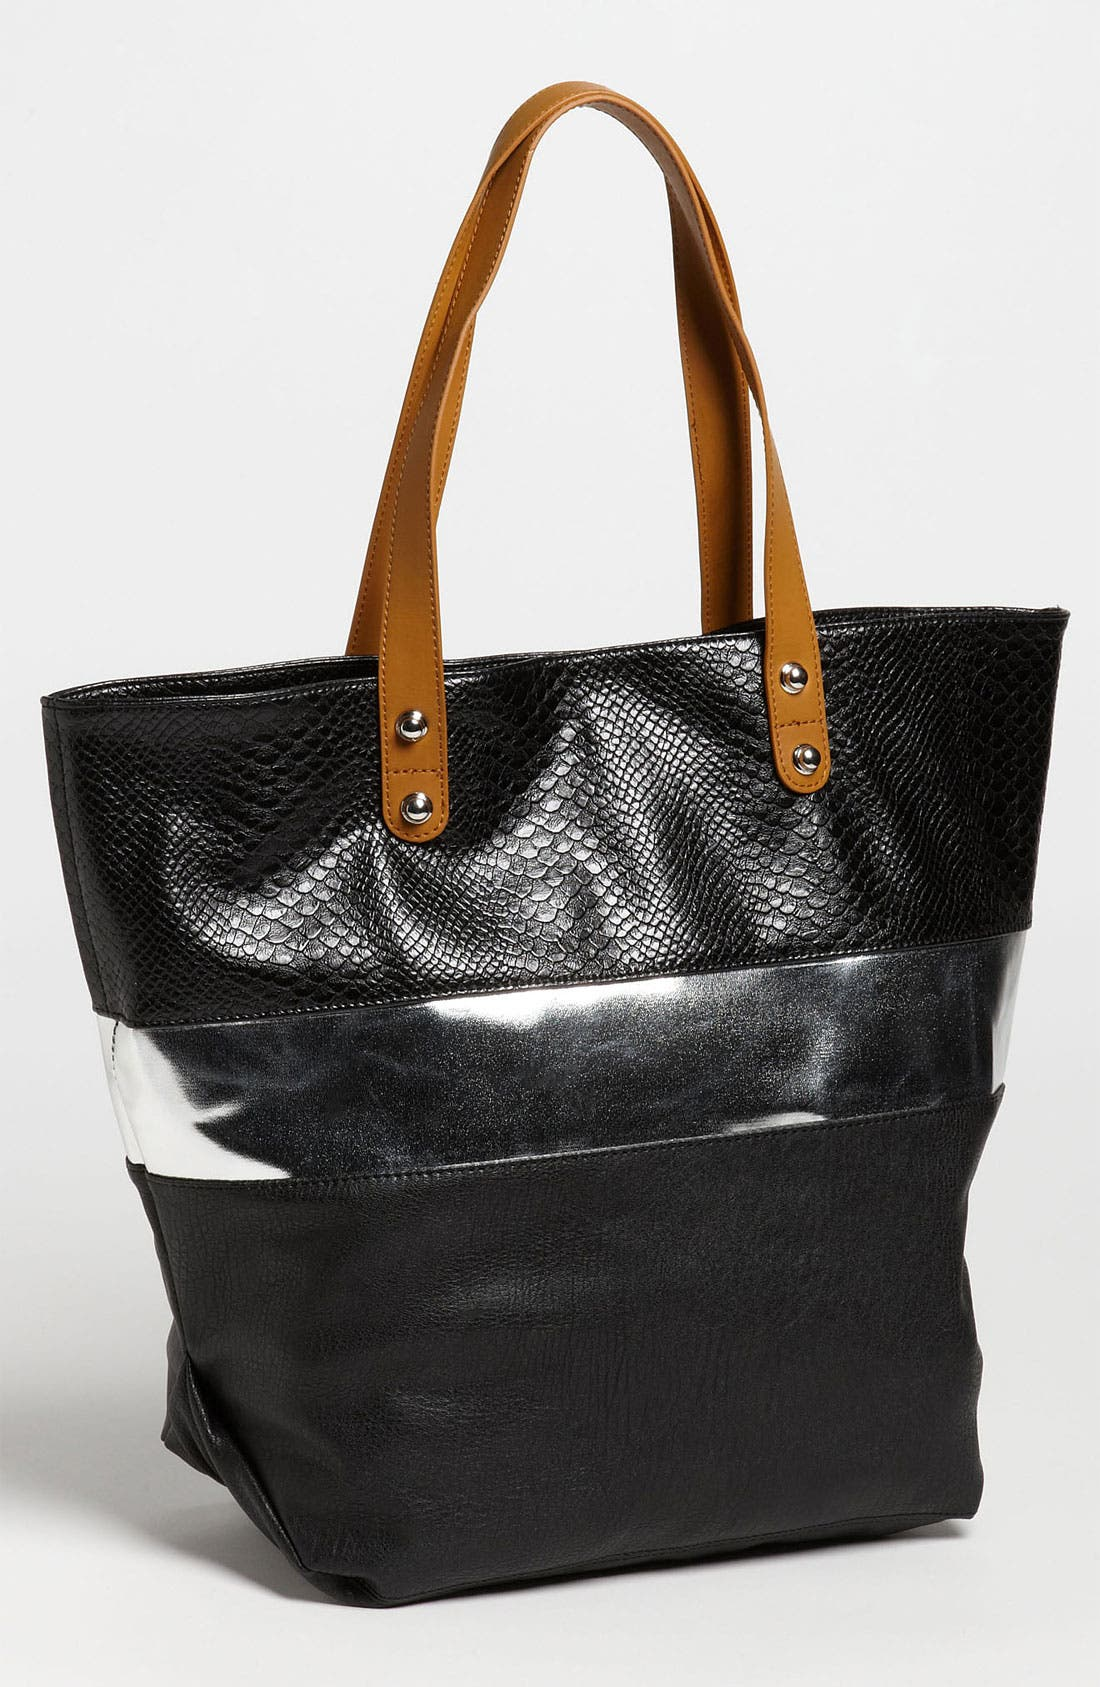 Main Image - Steve Madden 'Shimmie' Tote